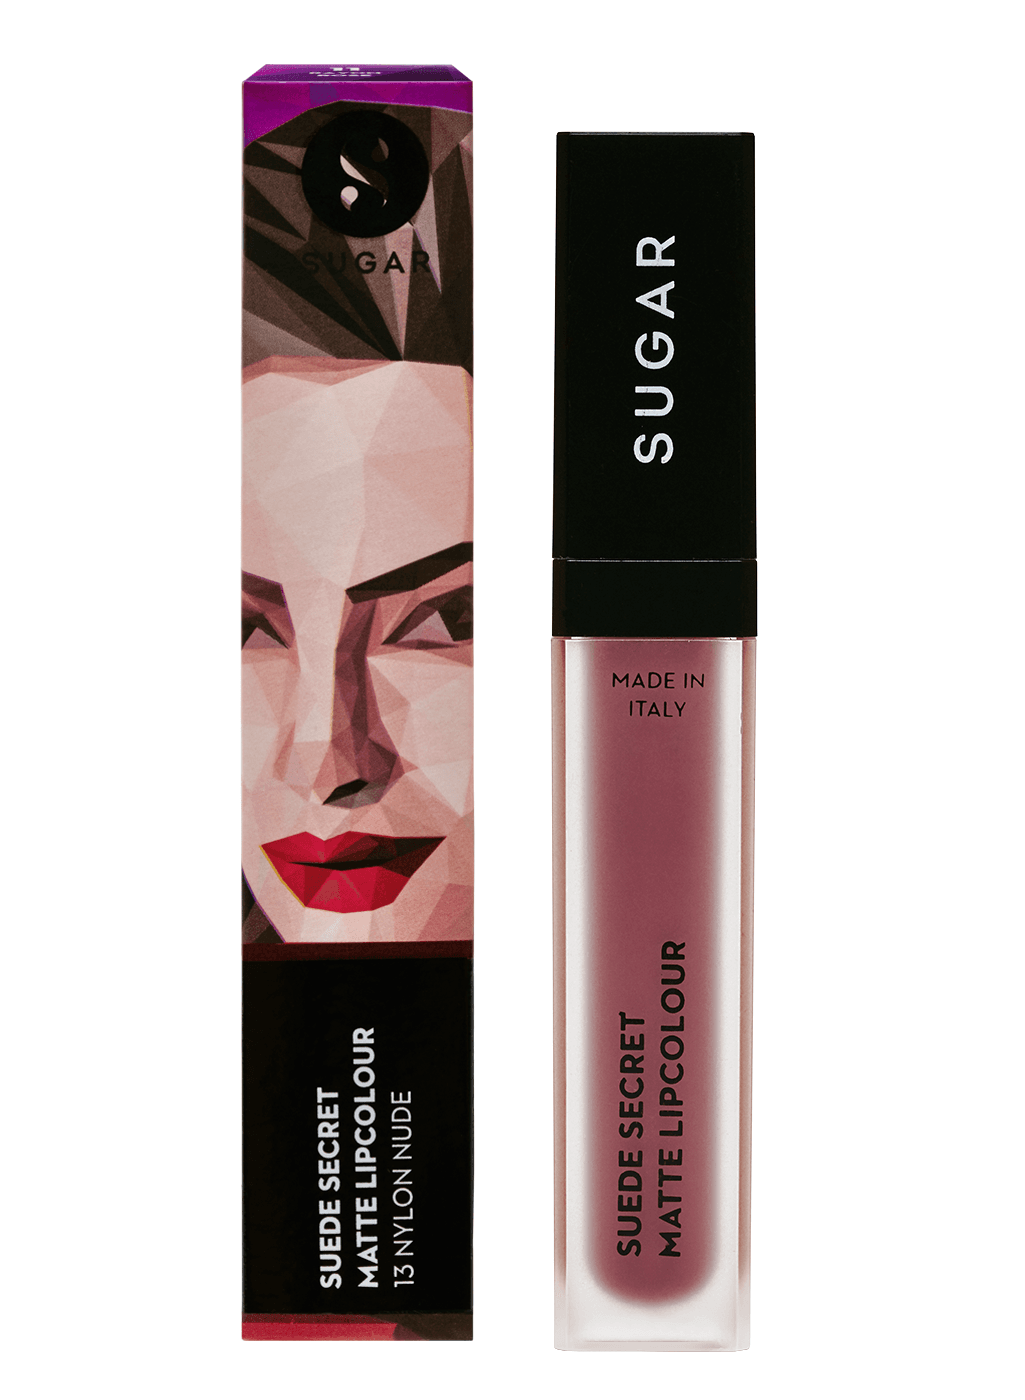 SUGAR Suede Secret Matte Lipcolour - 13 Nylon Nude (Nude Pink)